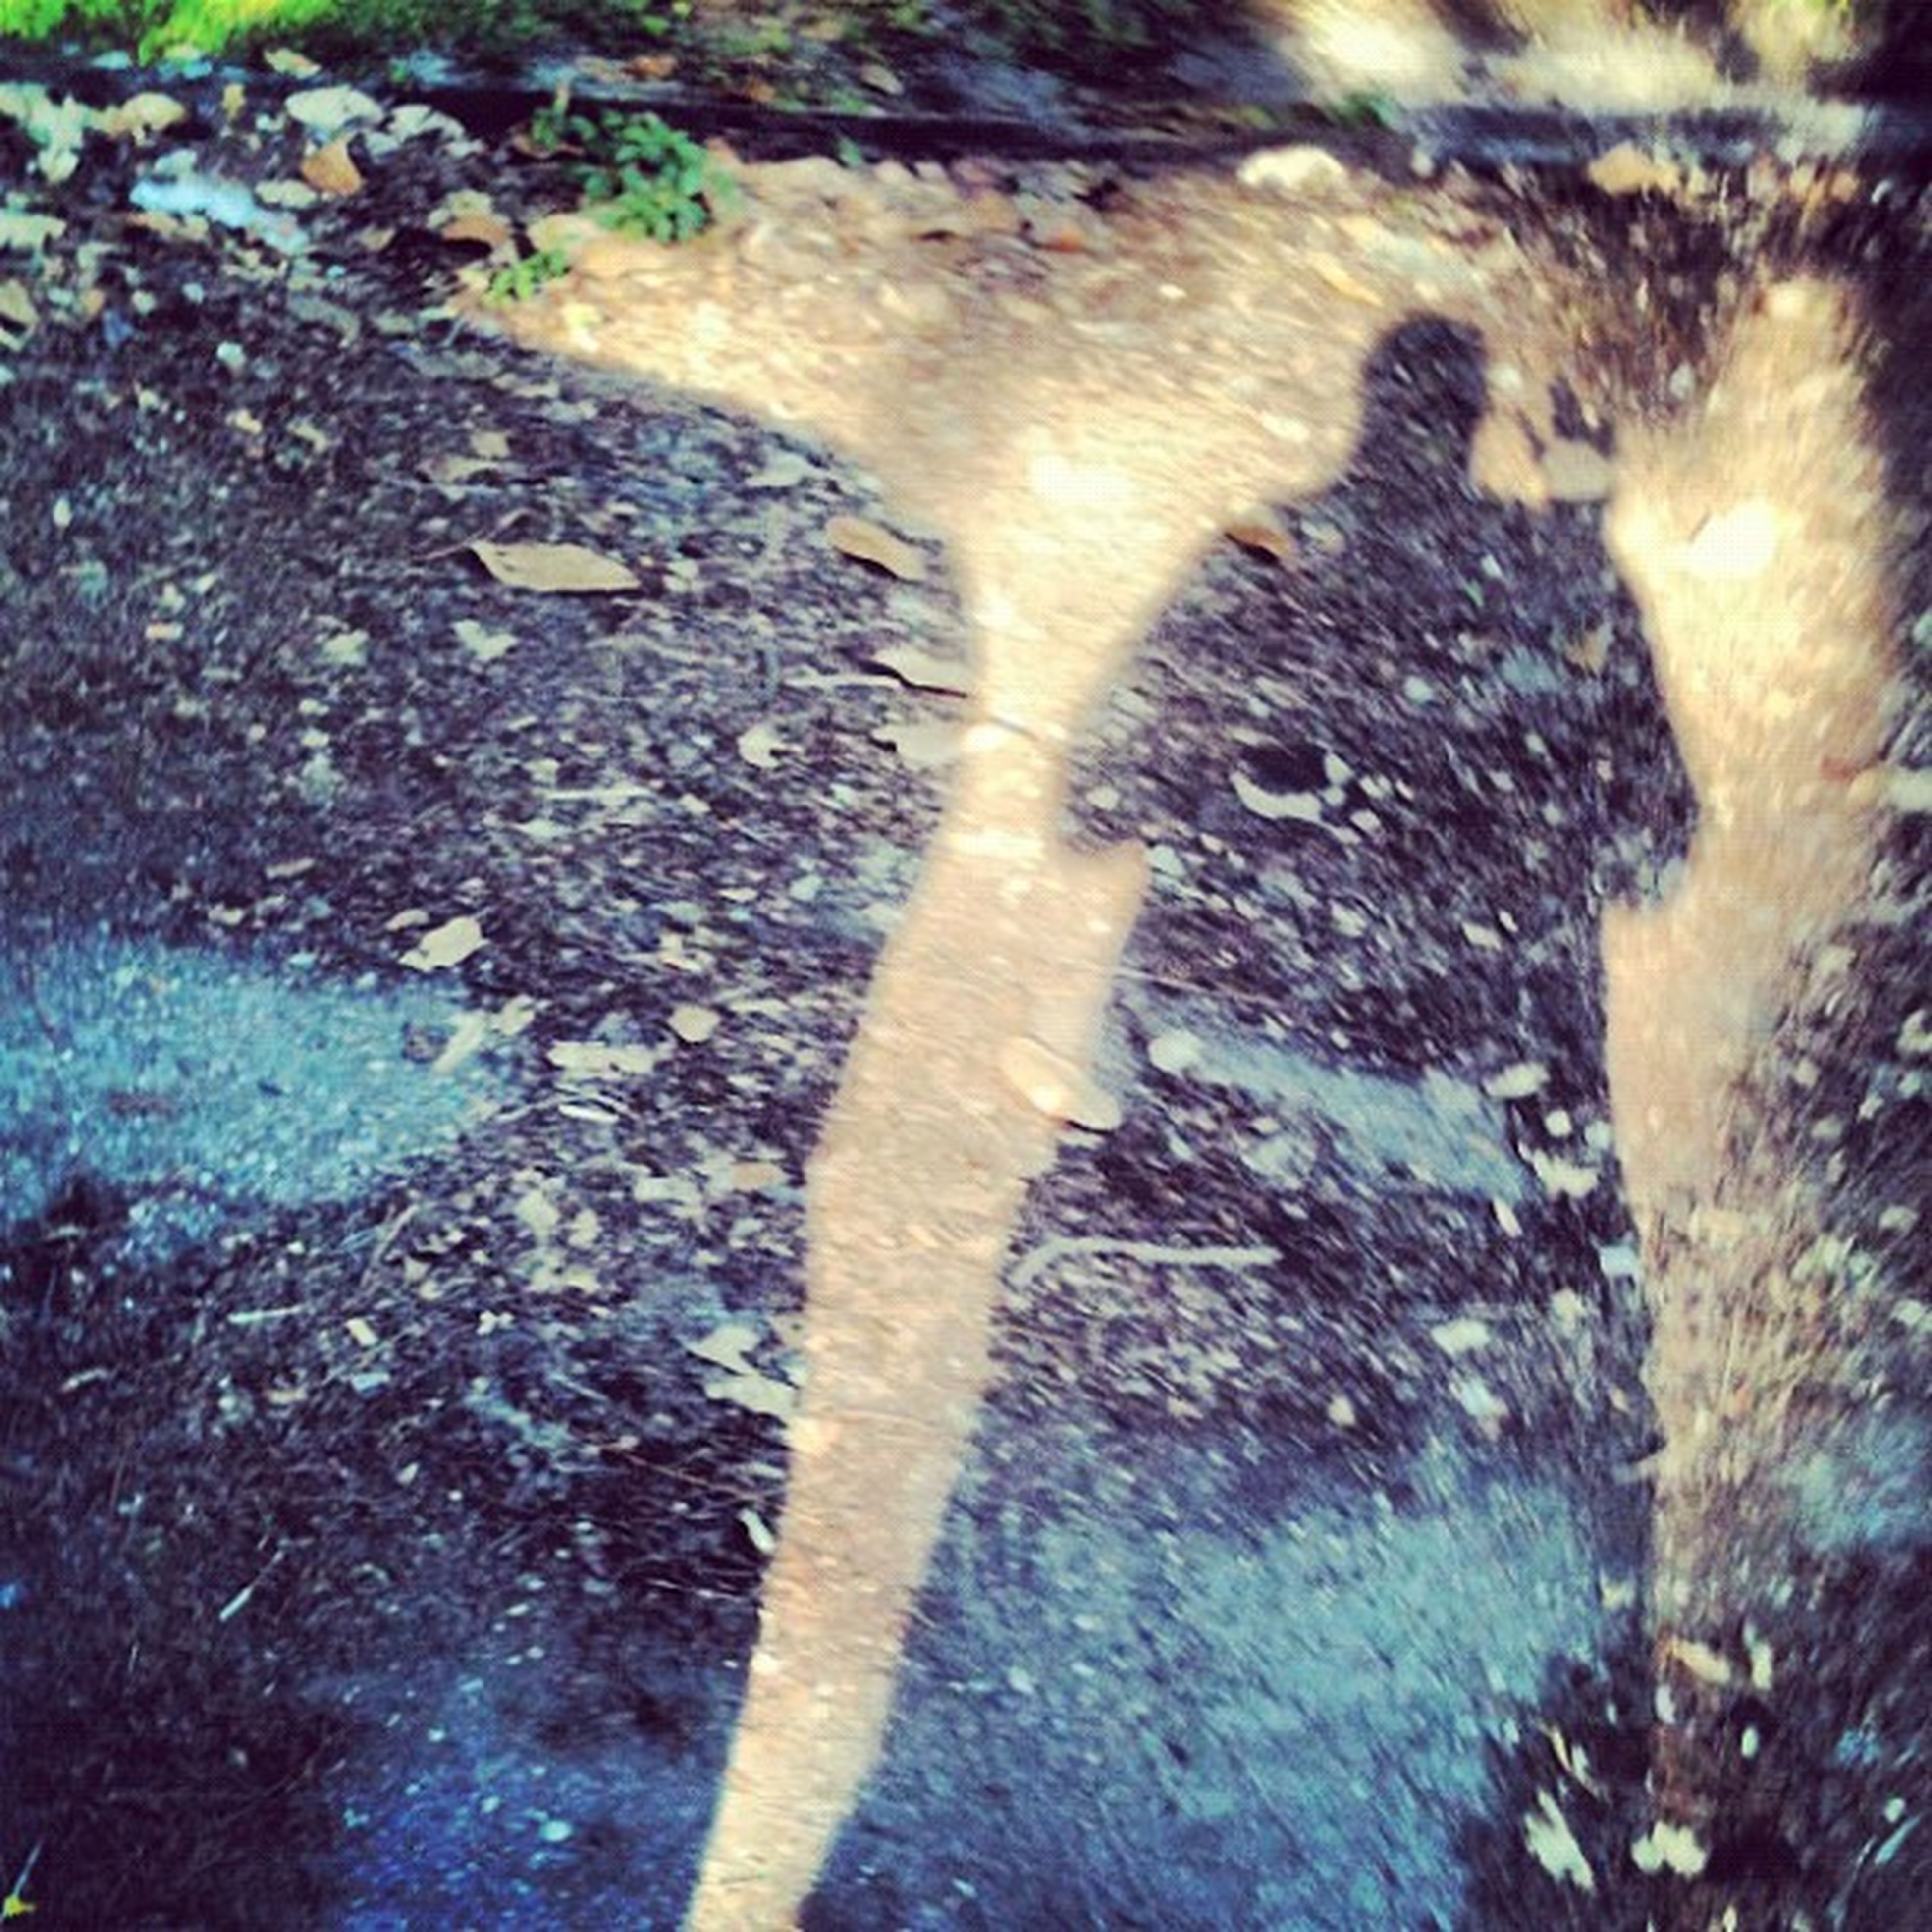 high angle view, water, nature, close-up, sunlight, day, outdoors, puddle, shadow, street, asphalt, no people, textured, ground, full frame, directly above, wet, plant, rock - object, unrecognizable person